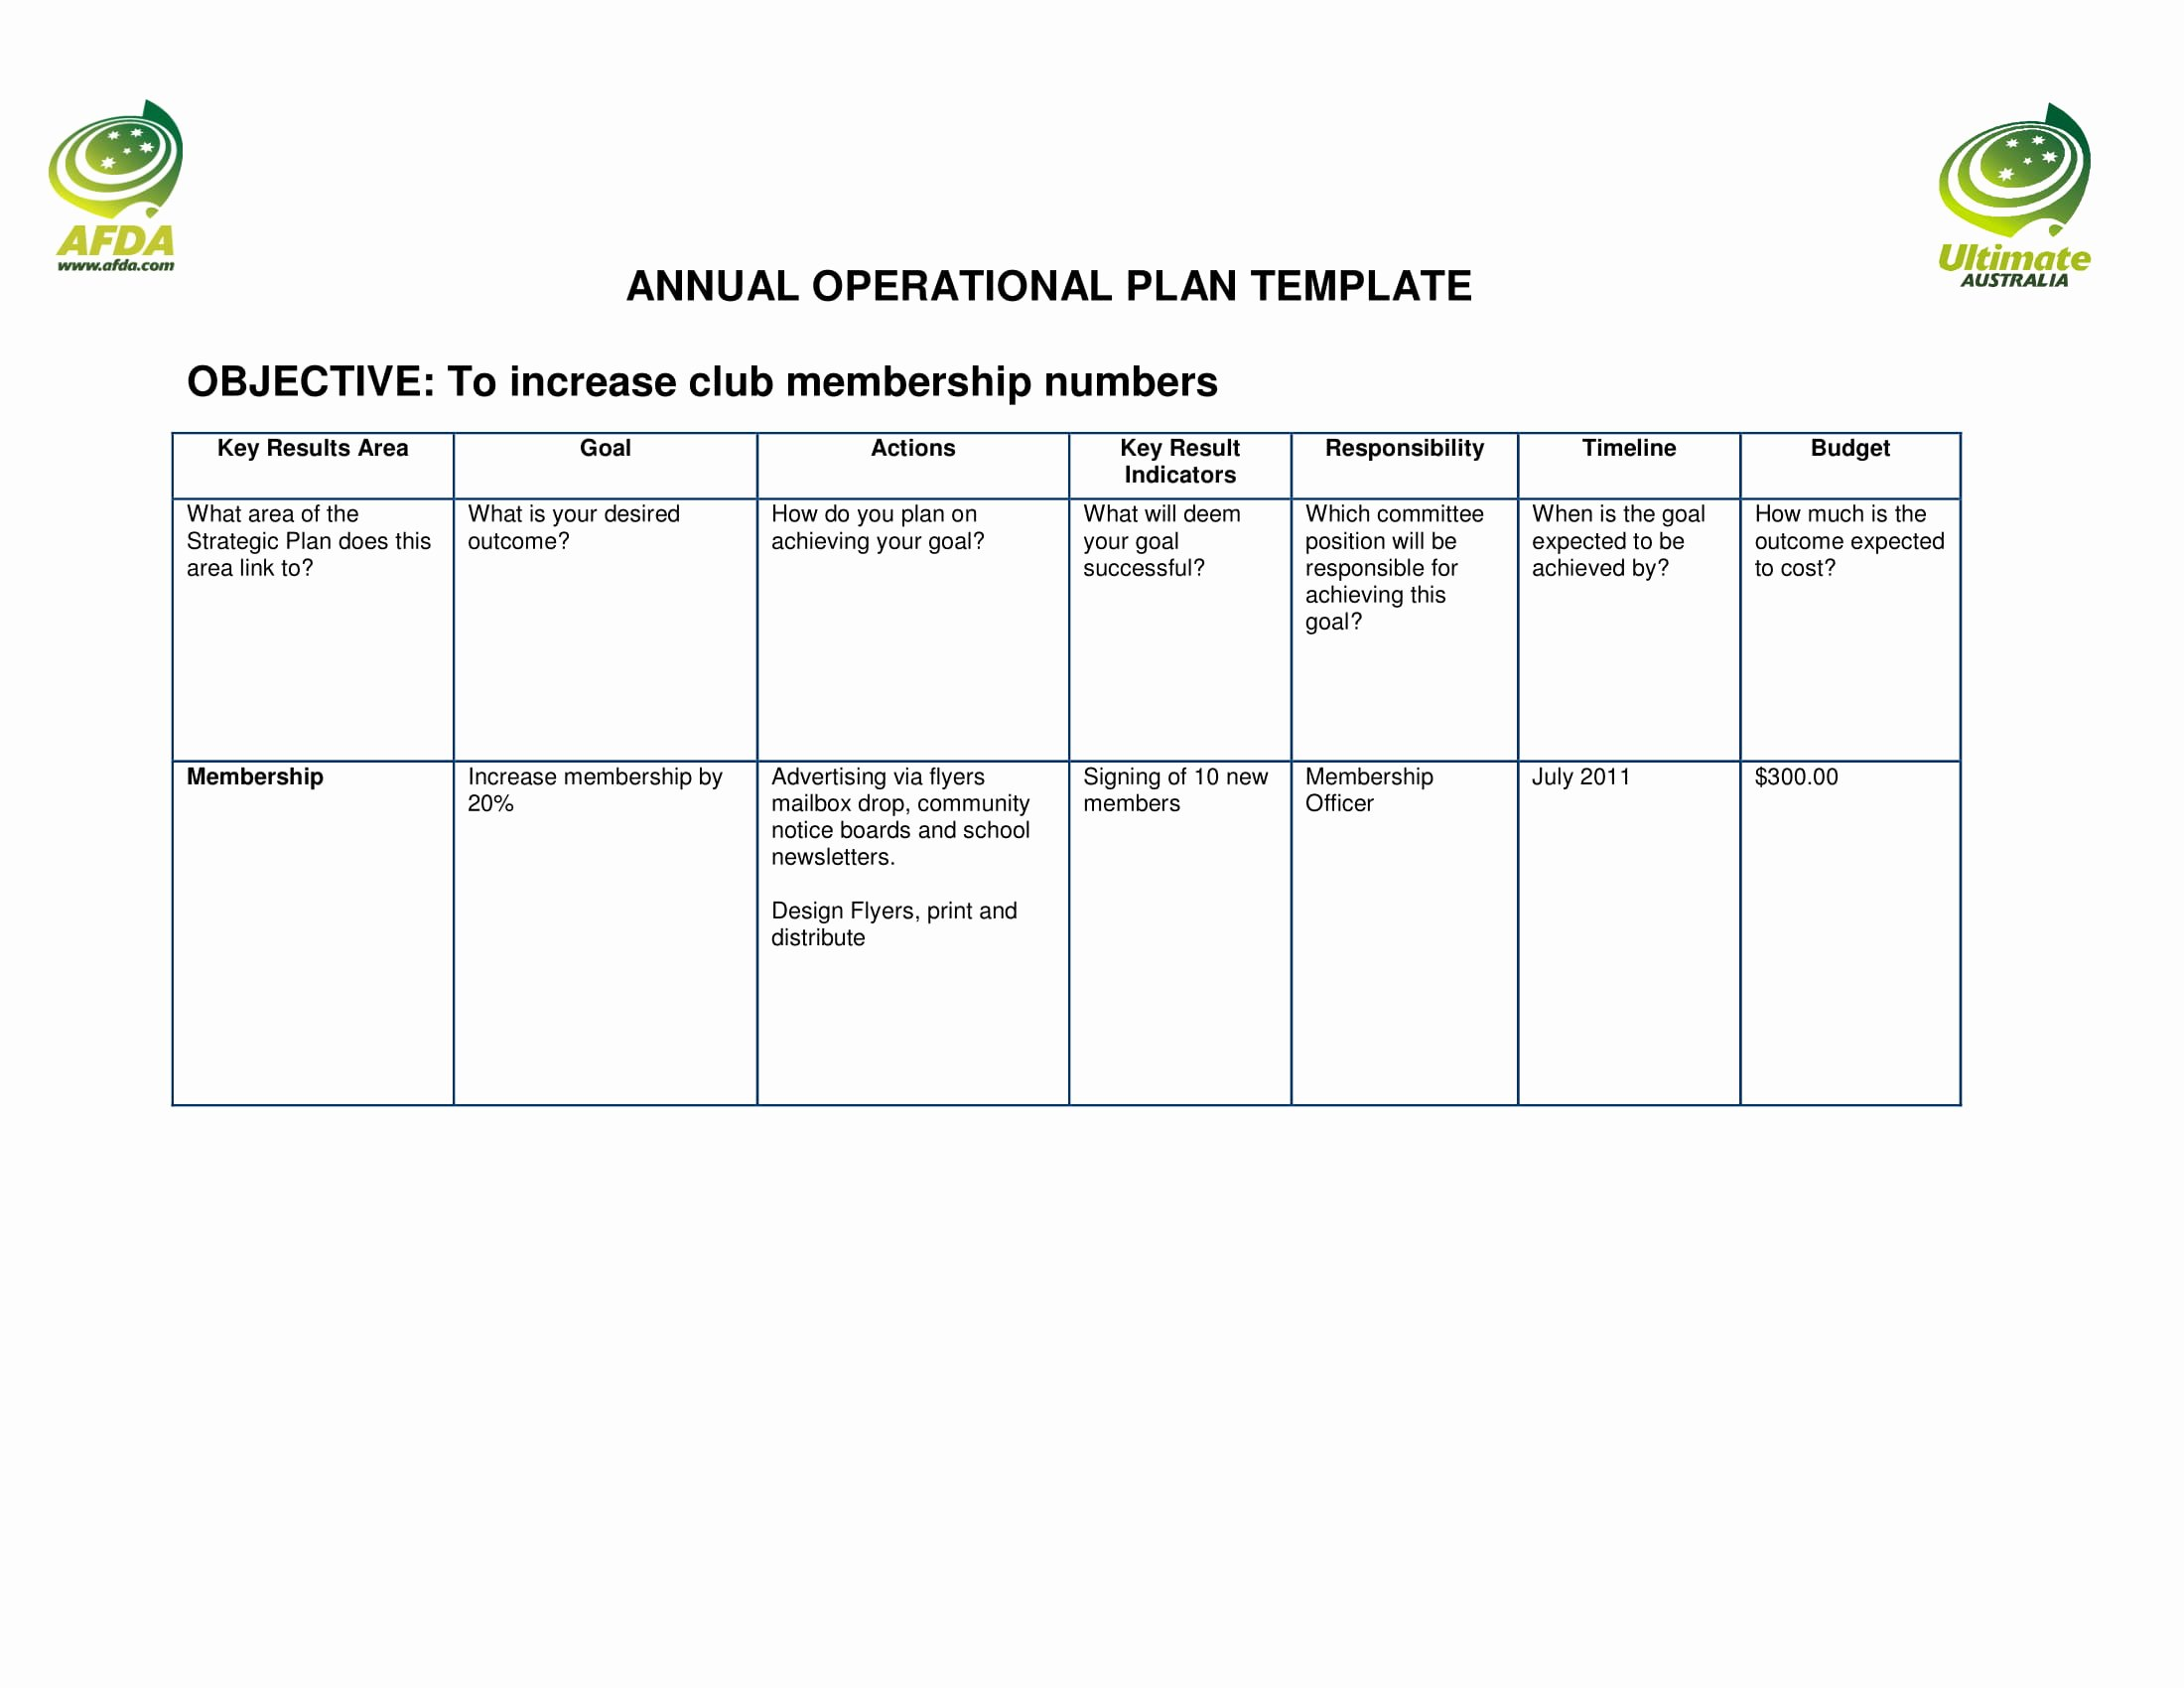 Business Operational Plan Template Luxury 9 Annual Operational Plan Template Examples Pdf